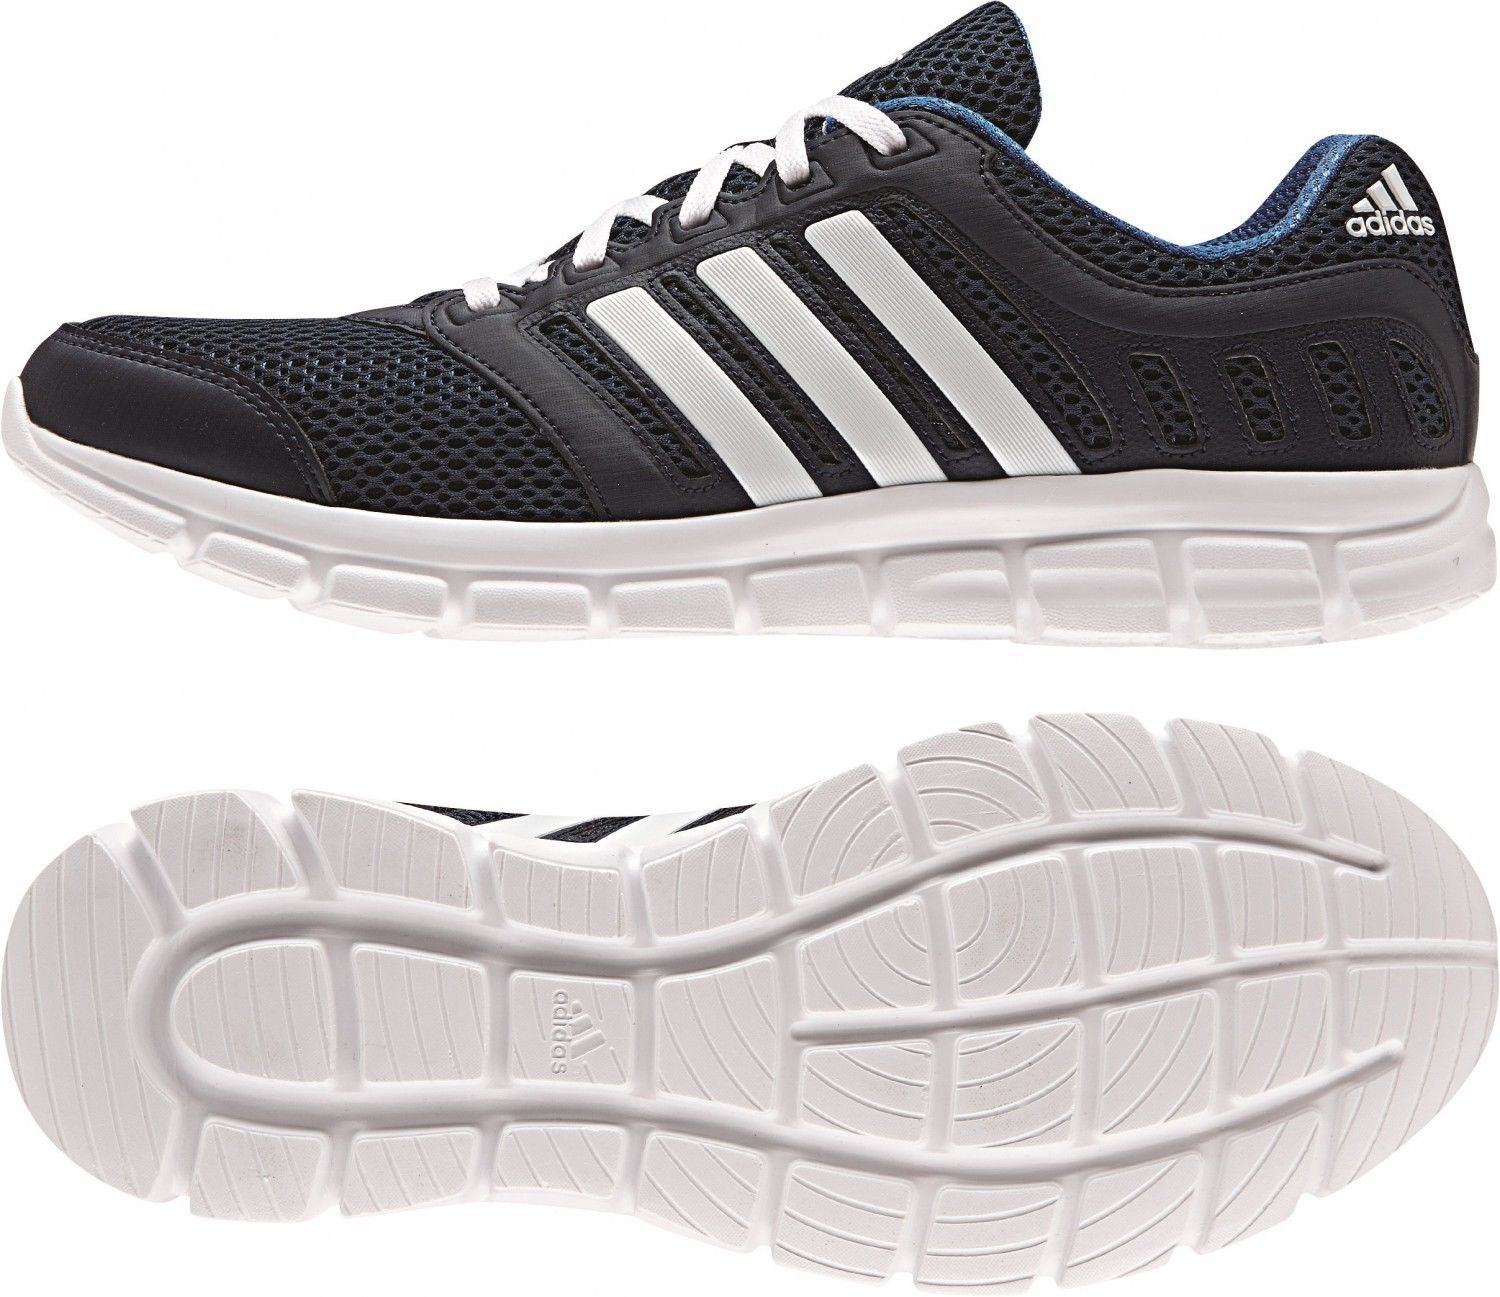 Adidas Breeze 101 2 Athletic Running Men's Shoes